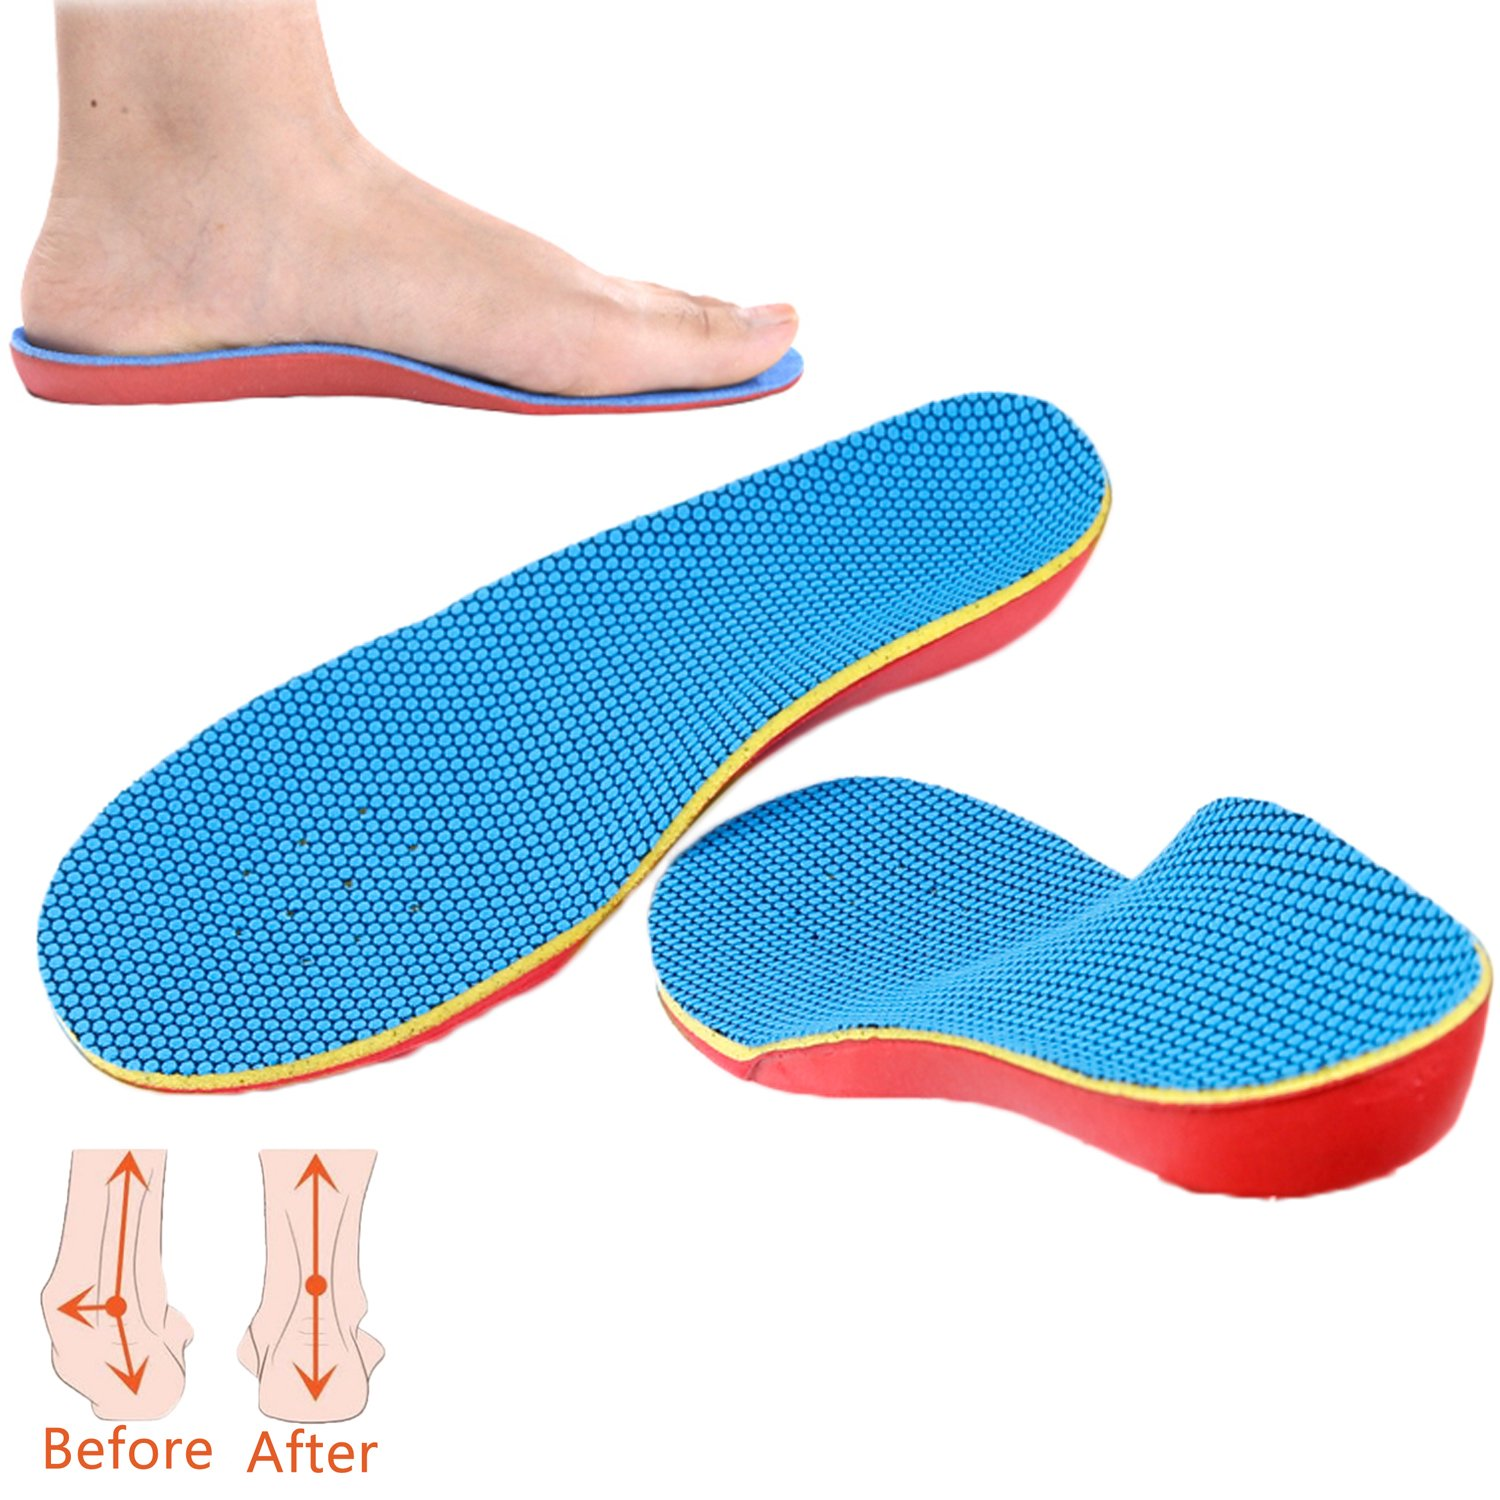 DODOING Kid's Insoles-Full Length Children's Orthotic Pad with Arch Support For Pain Relief,Flat Feet